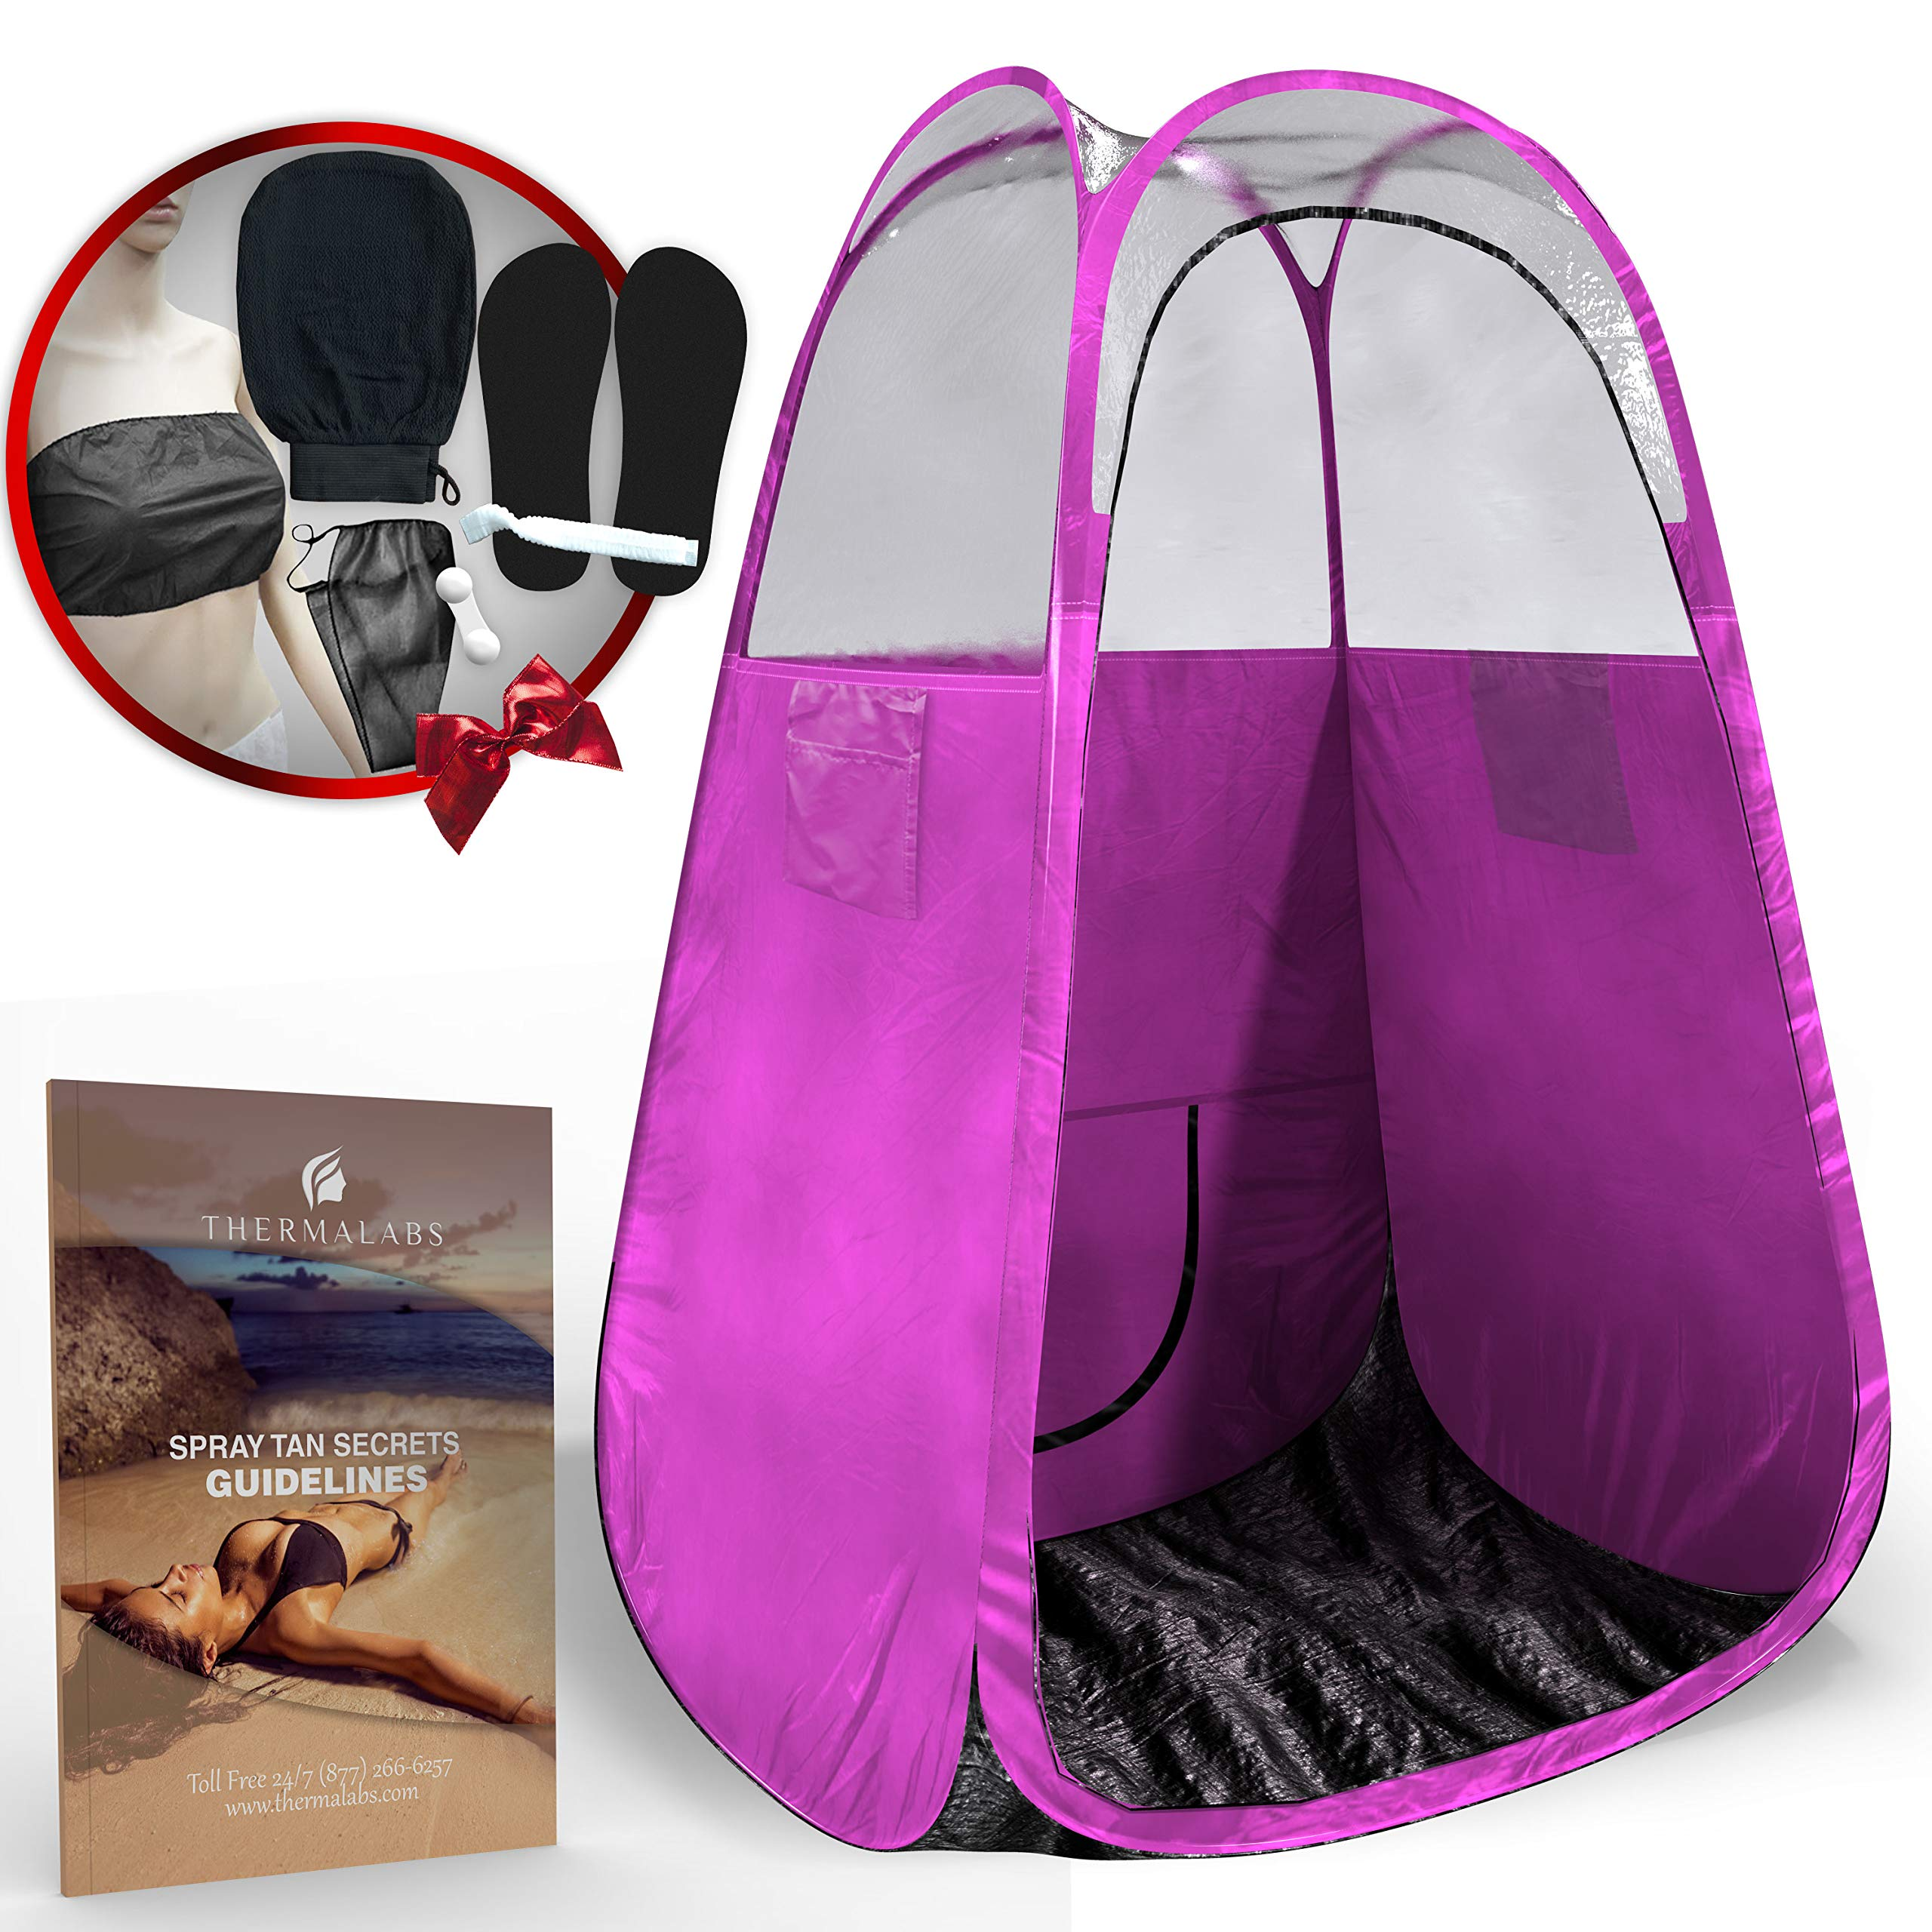 Spray Tan Tent (Pink) The Best, Bigger Than Others, Folds Easily in 30 Seconds and Has NO Logo On Tent Itself! Professional Sunless Tanning Pop-Up Spraying Booth for Airbrush Art, Makeup & Painting by Thermalabs